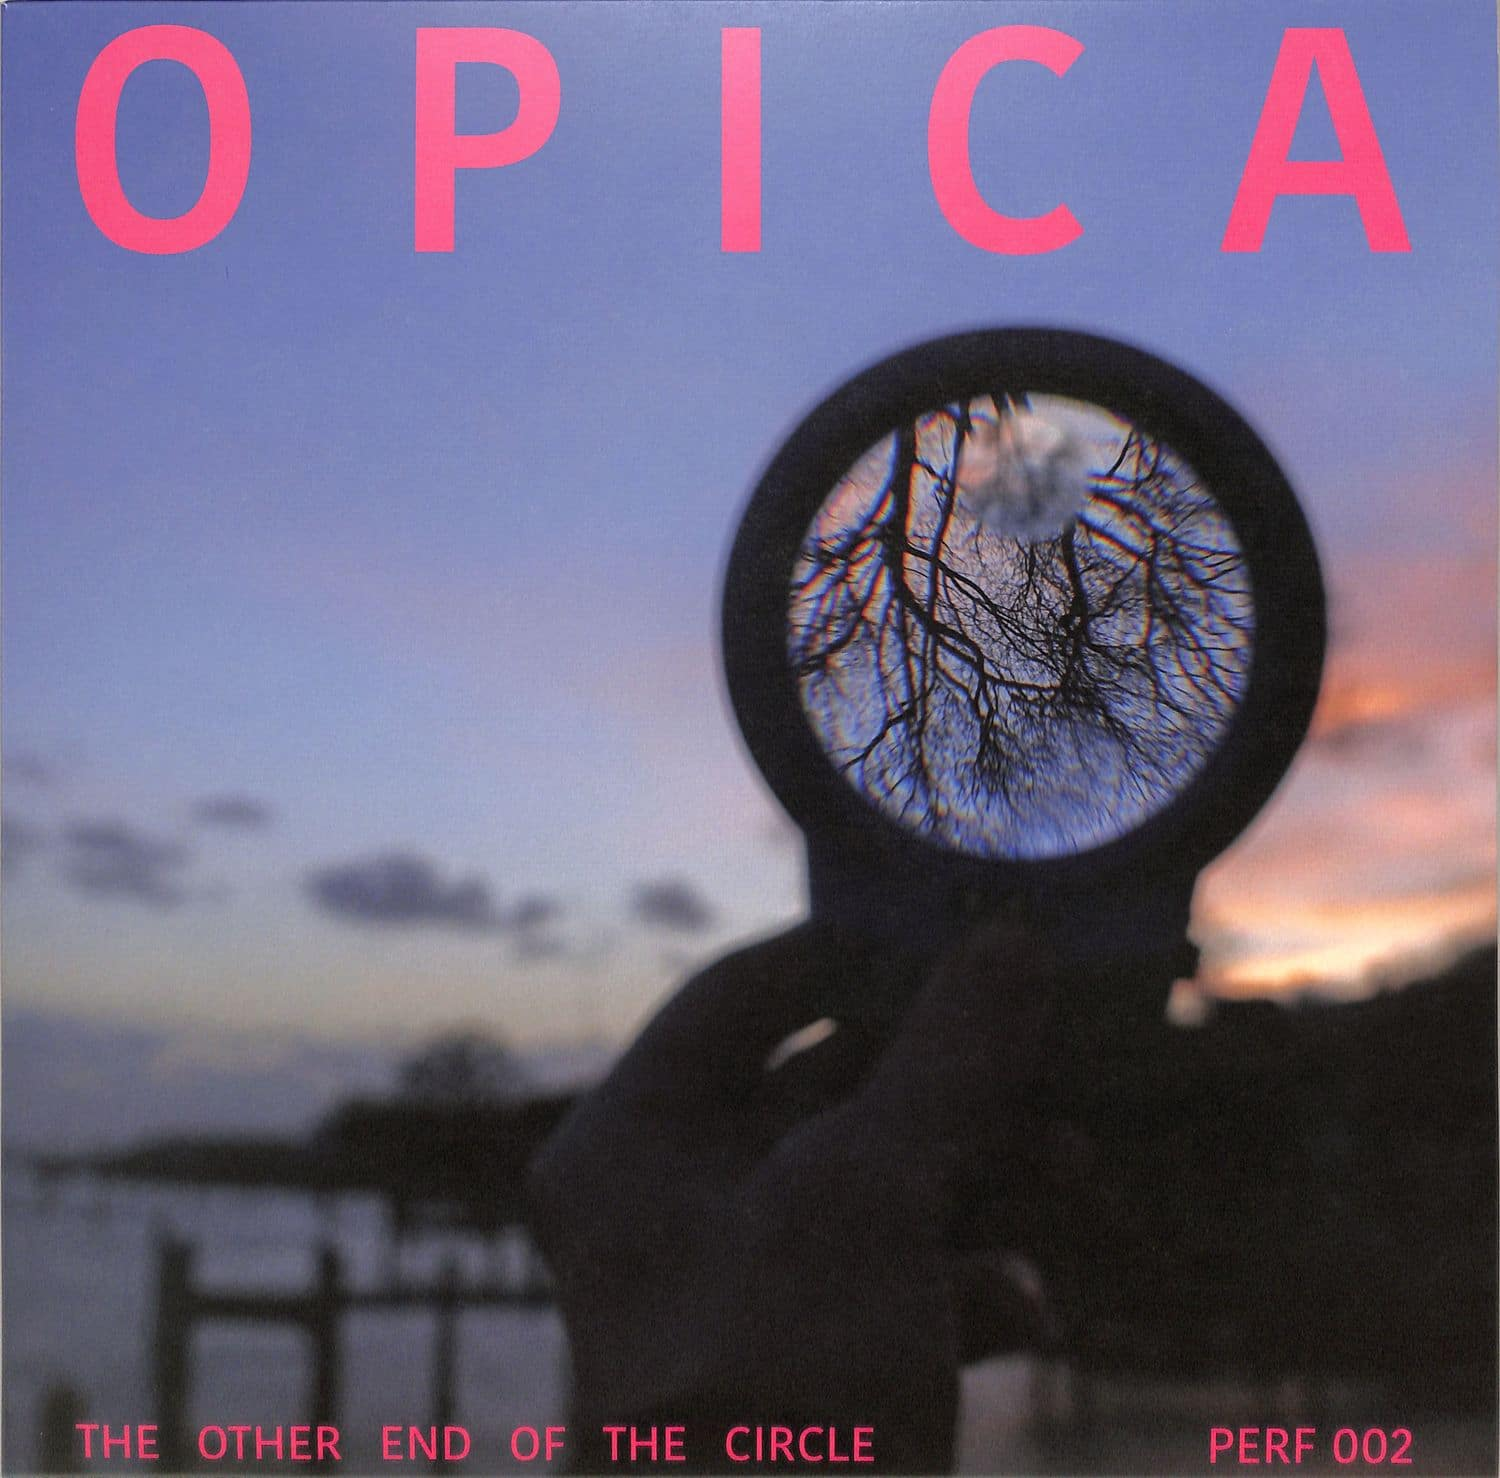 Opica - THE OTHER END OF THE CIRCLE